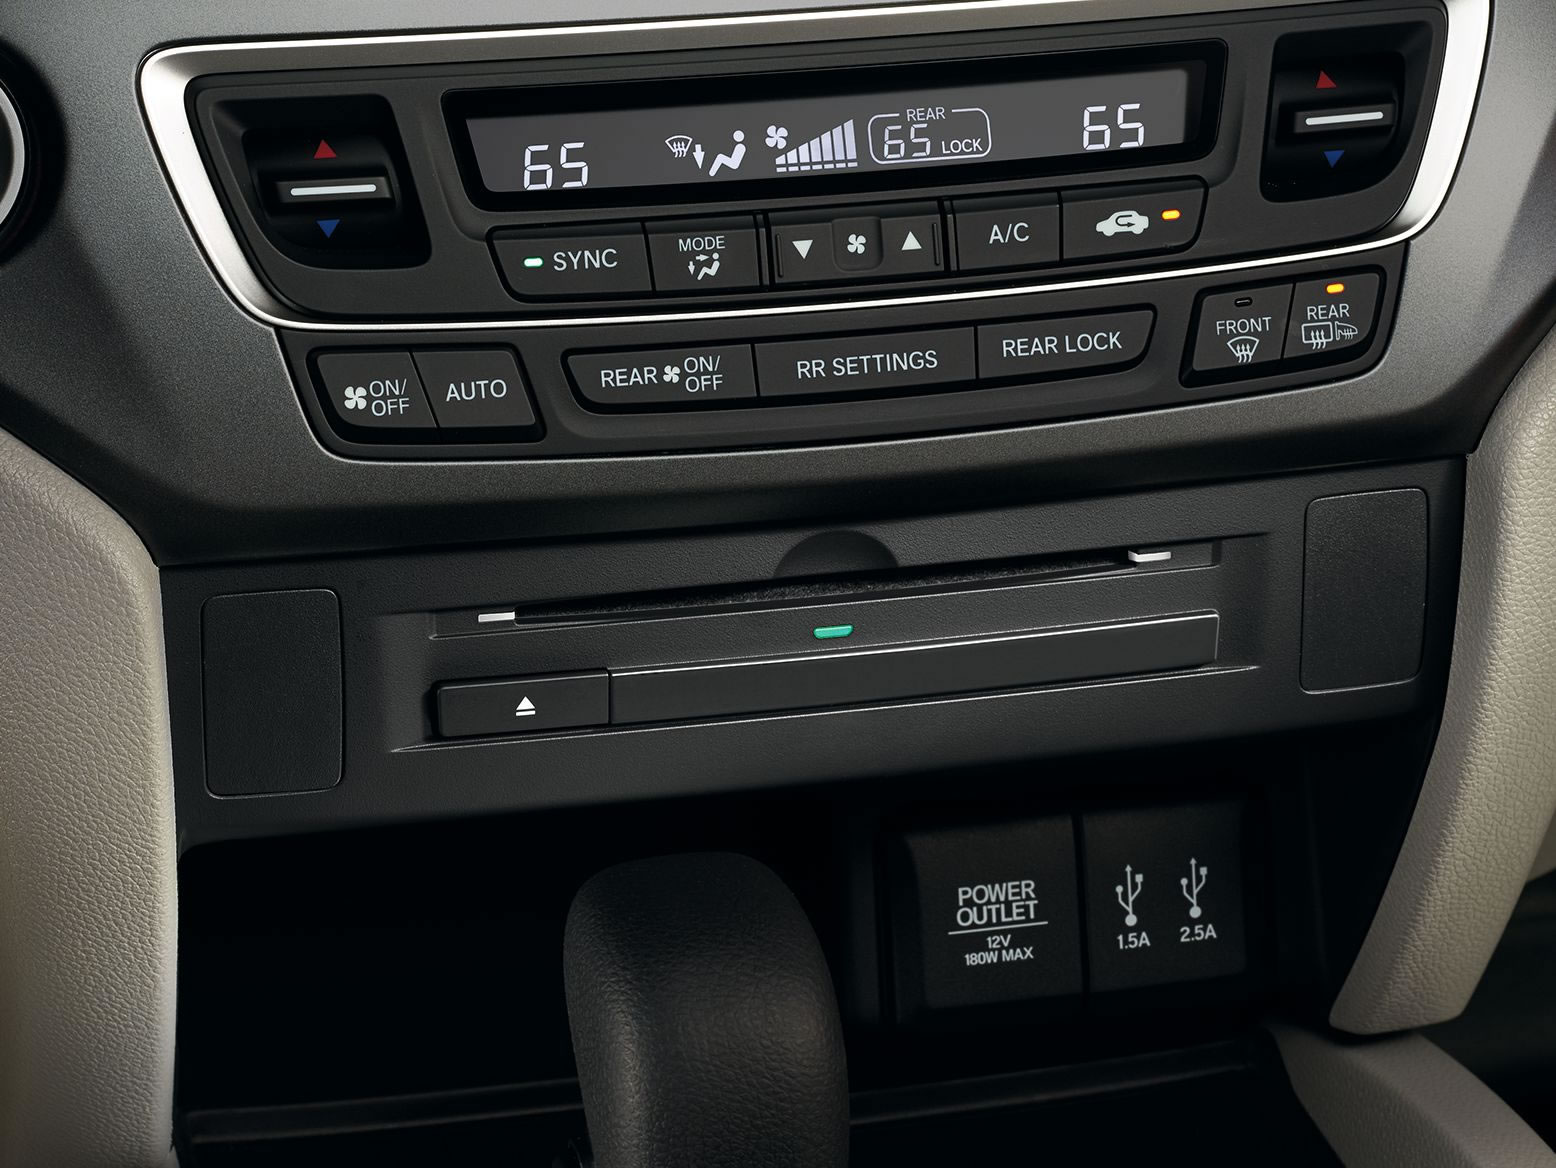 Honda Pilot Build >> Honda online store : 2018 RIDGELINE CD PLAYER